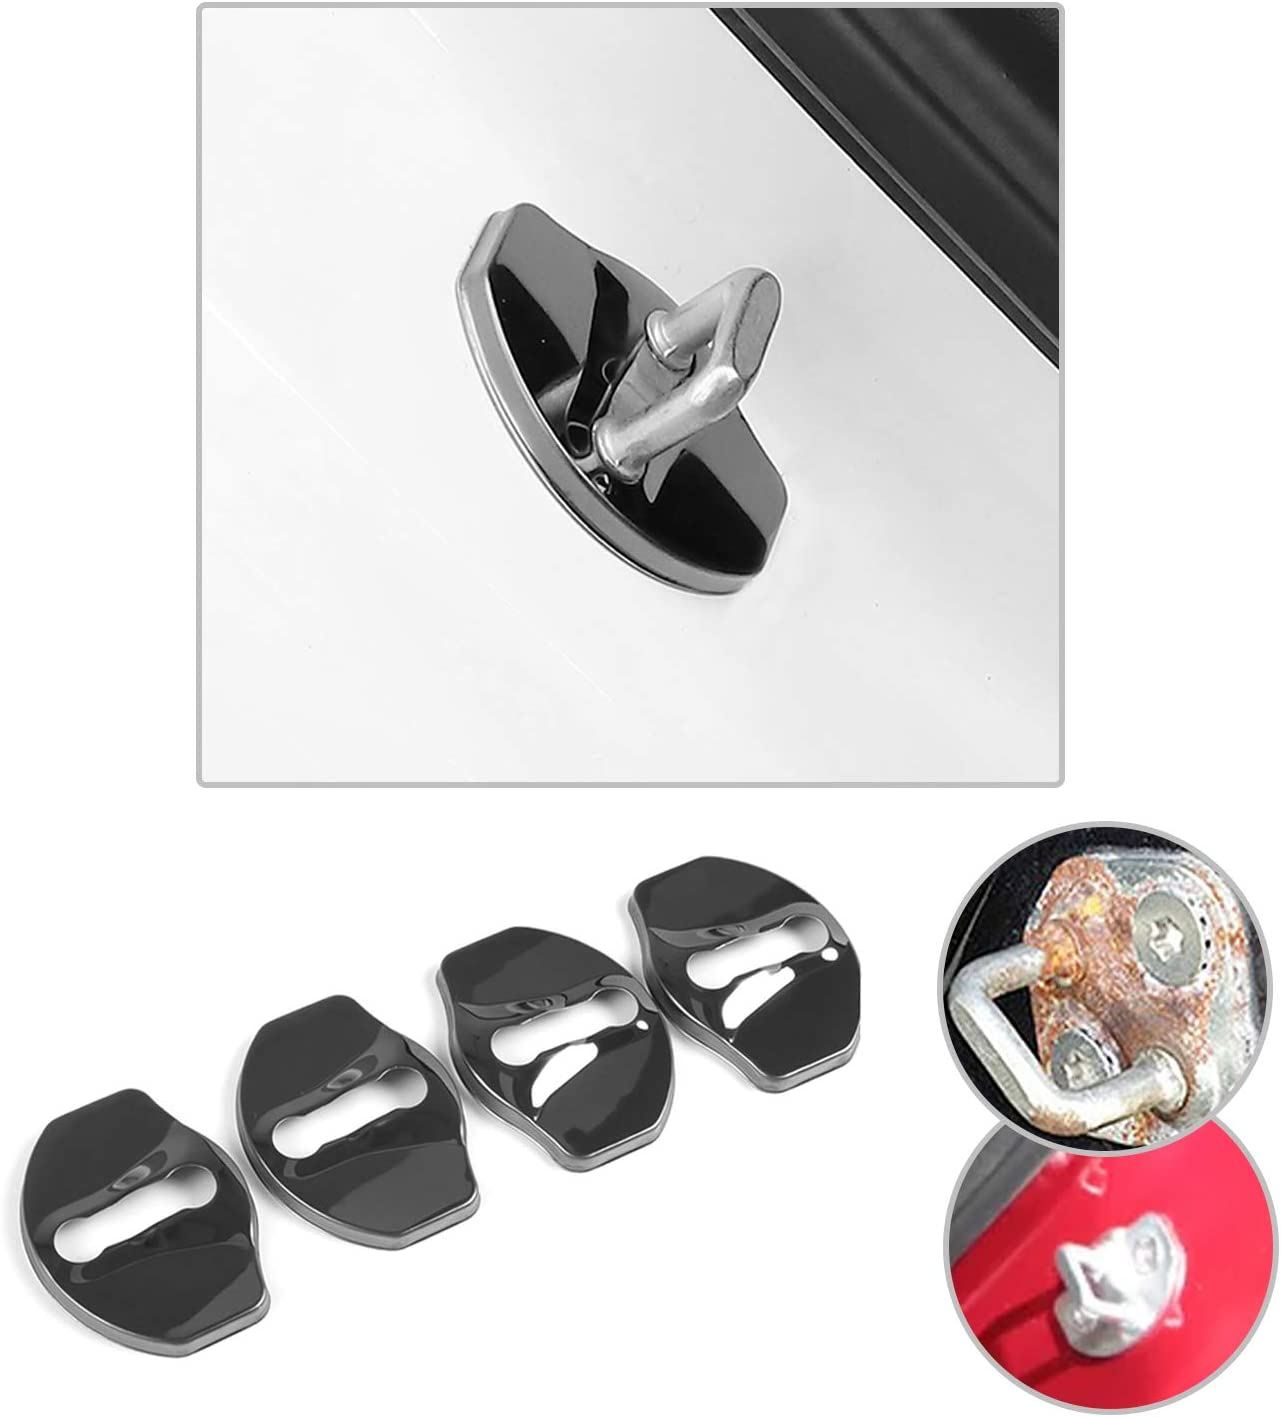 CDEFG 4 PCS Car Stainless Steel Door Locks Protective Cover for Model 3 Auto Interior Protection Black